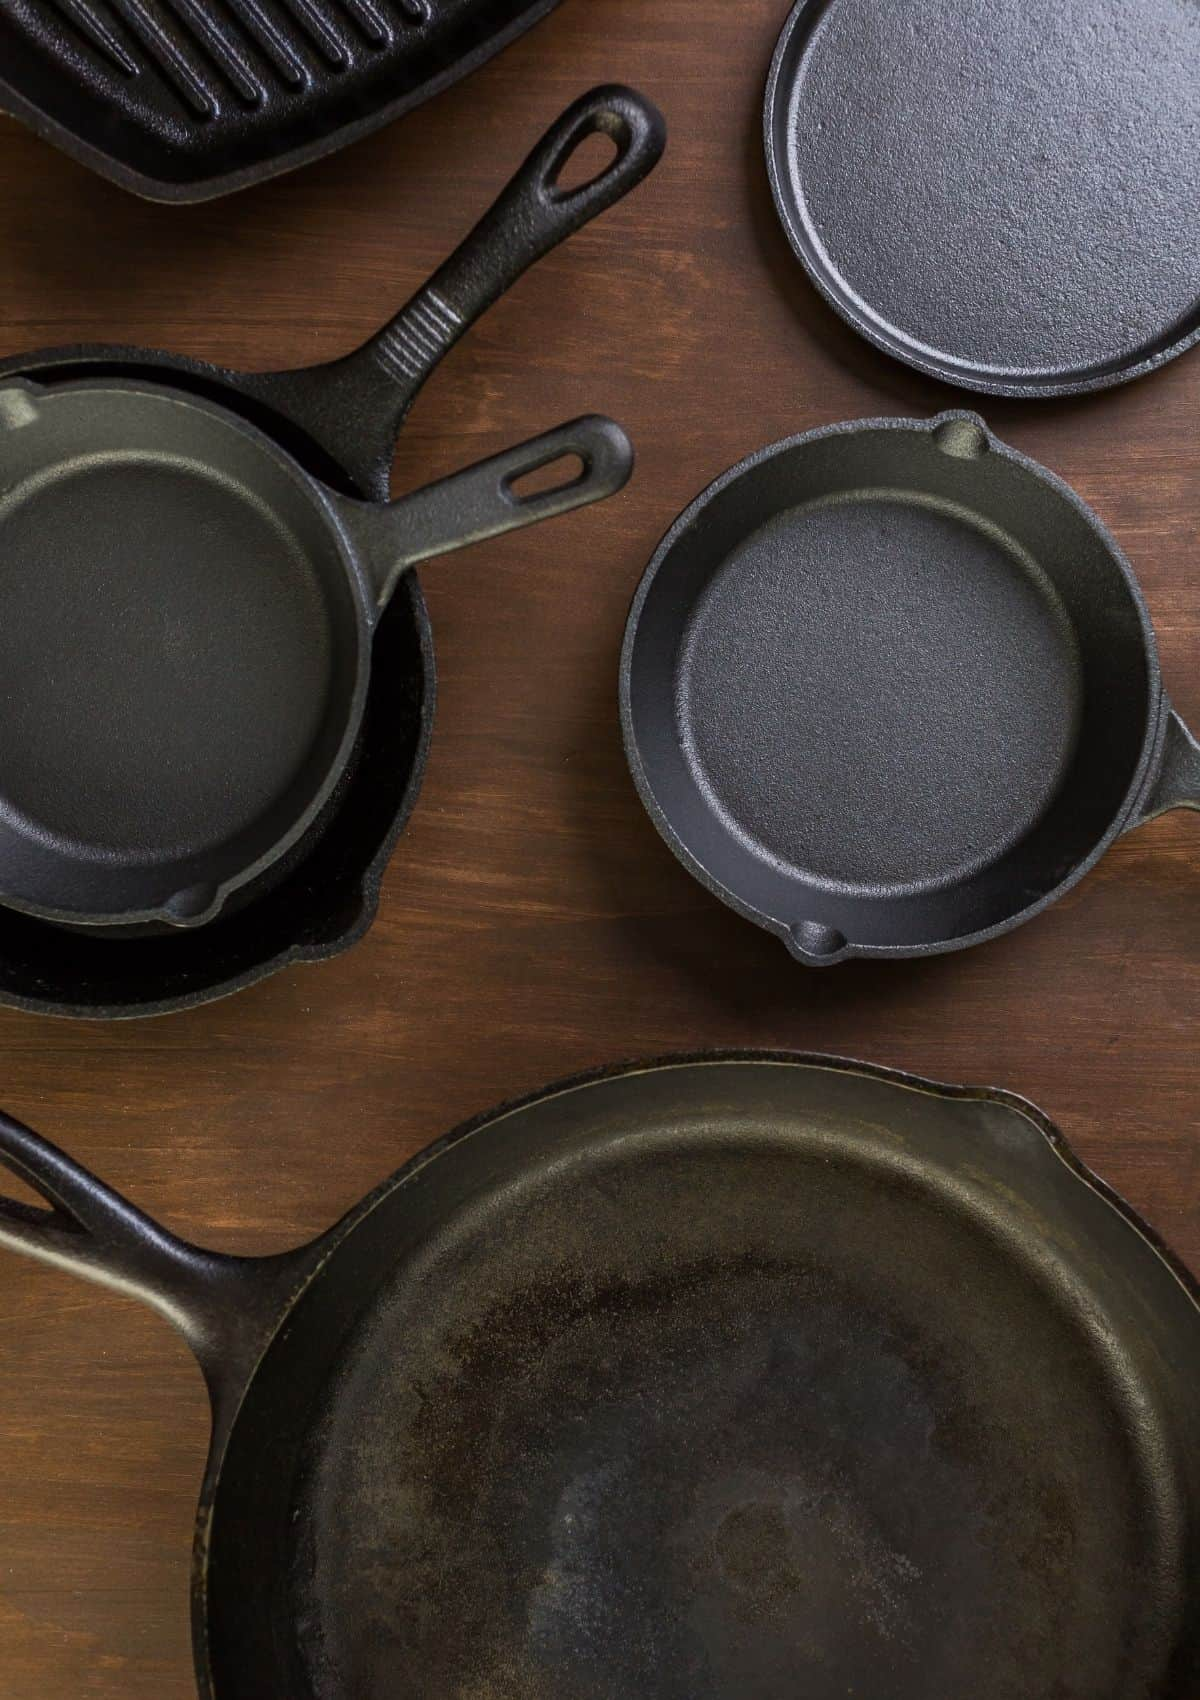 Cast iron pans on wood countertop.